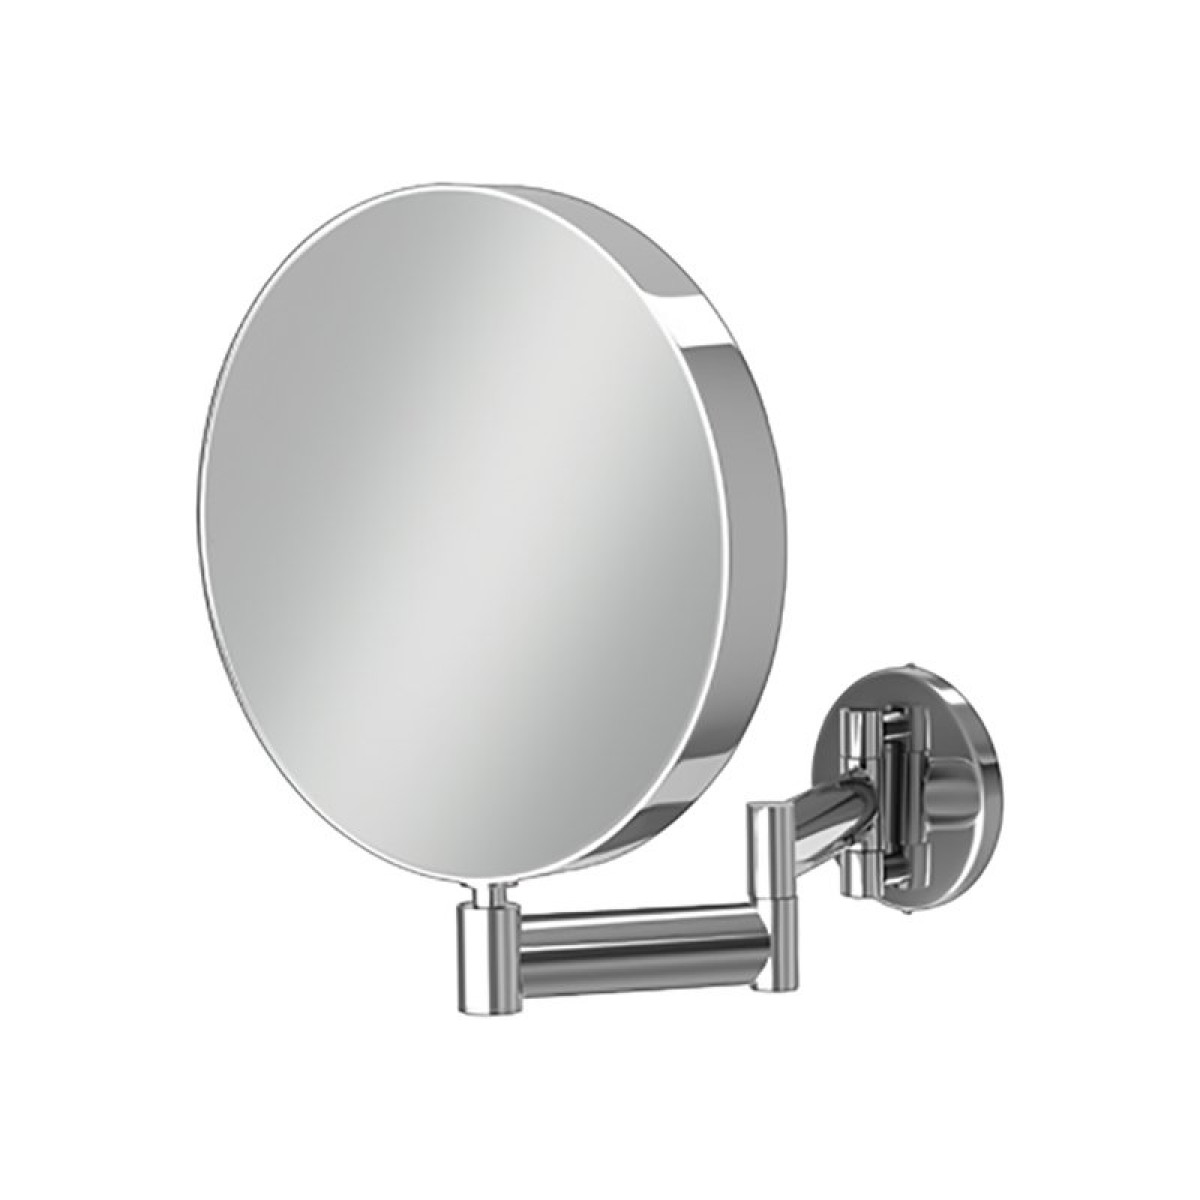 Hib helix round magnifying mirror 21300 for Round bathroom mirrors